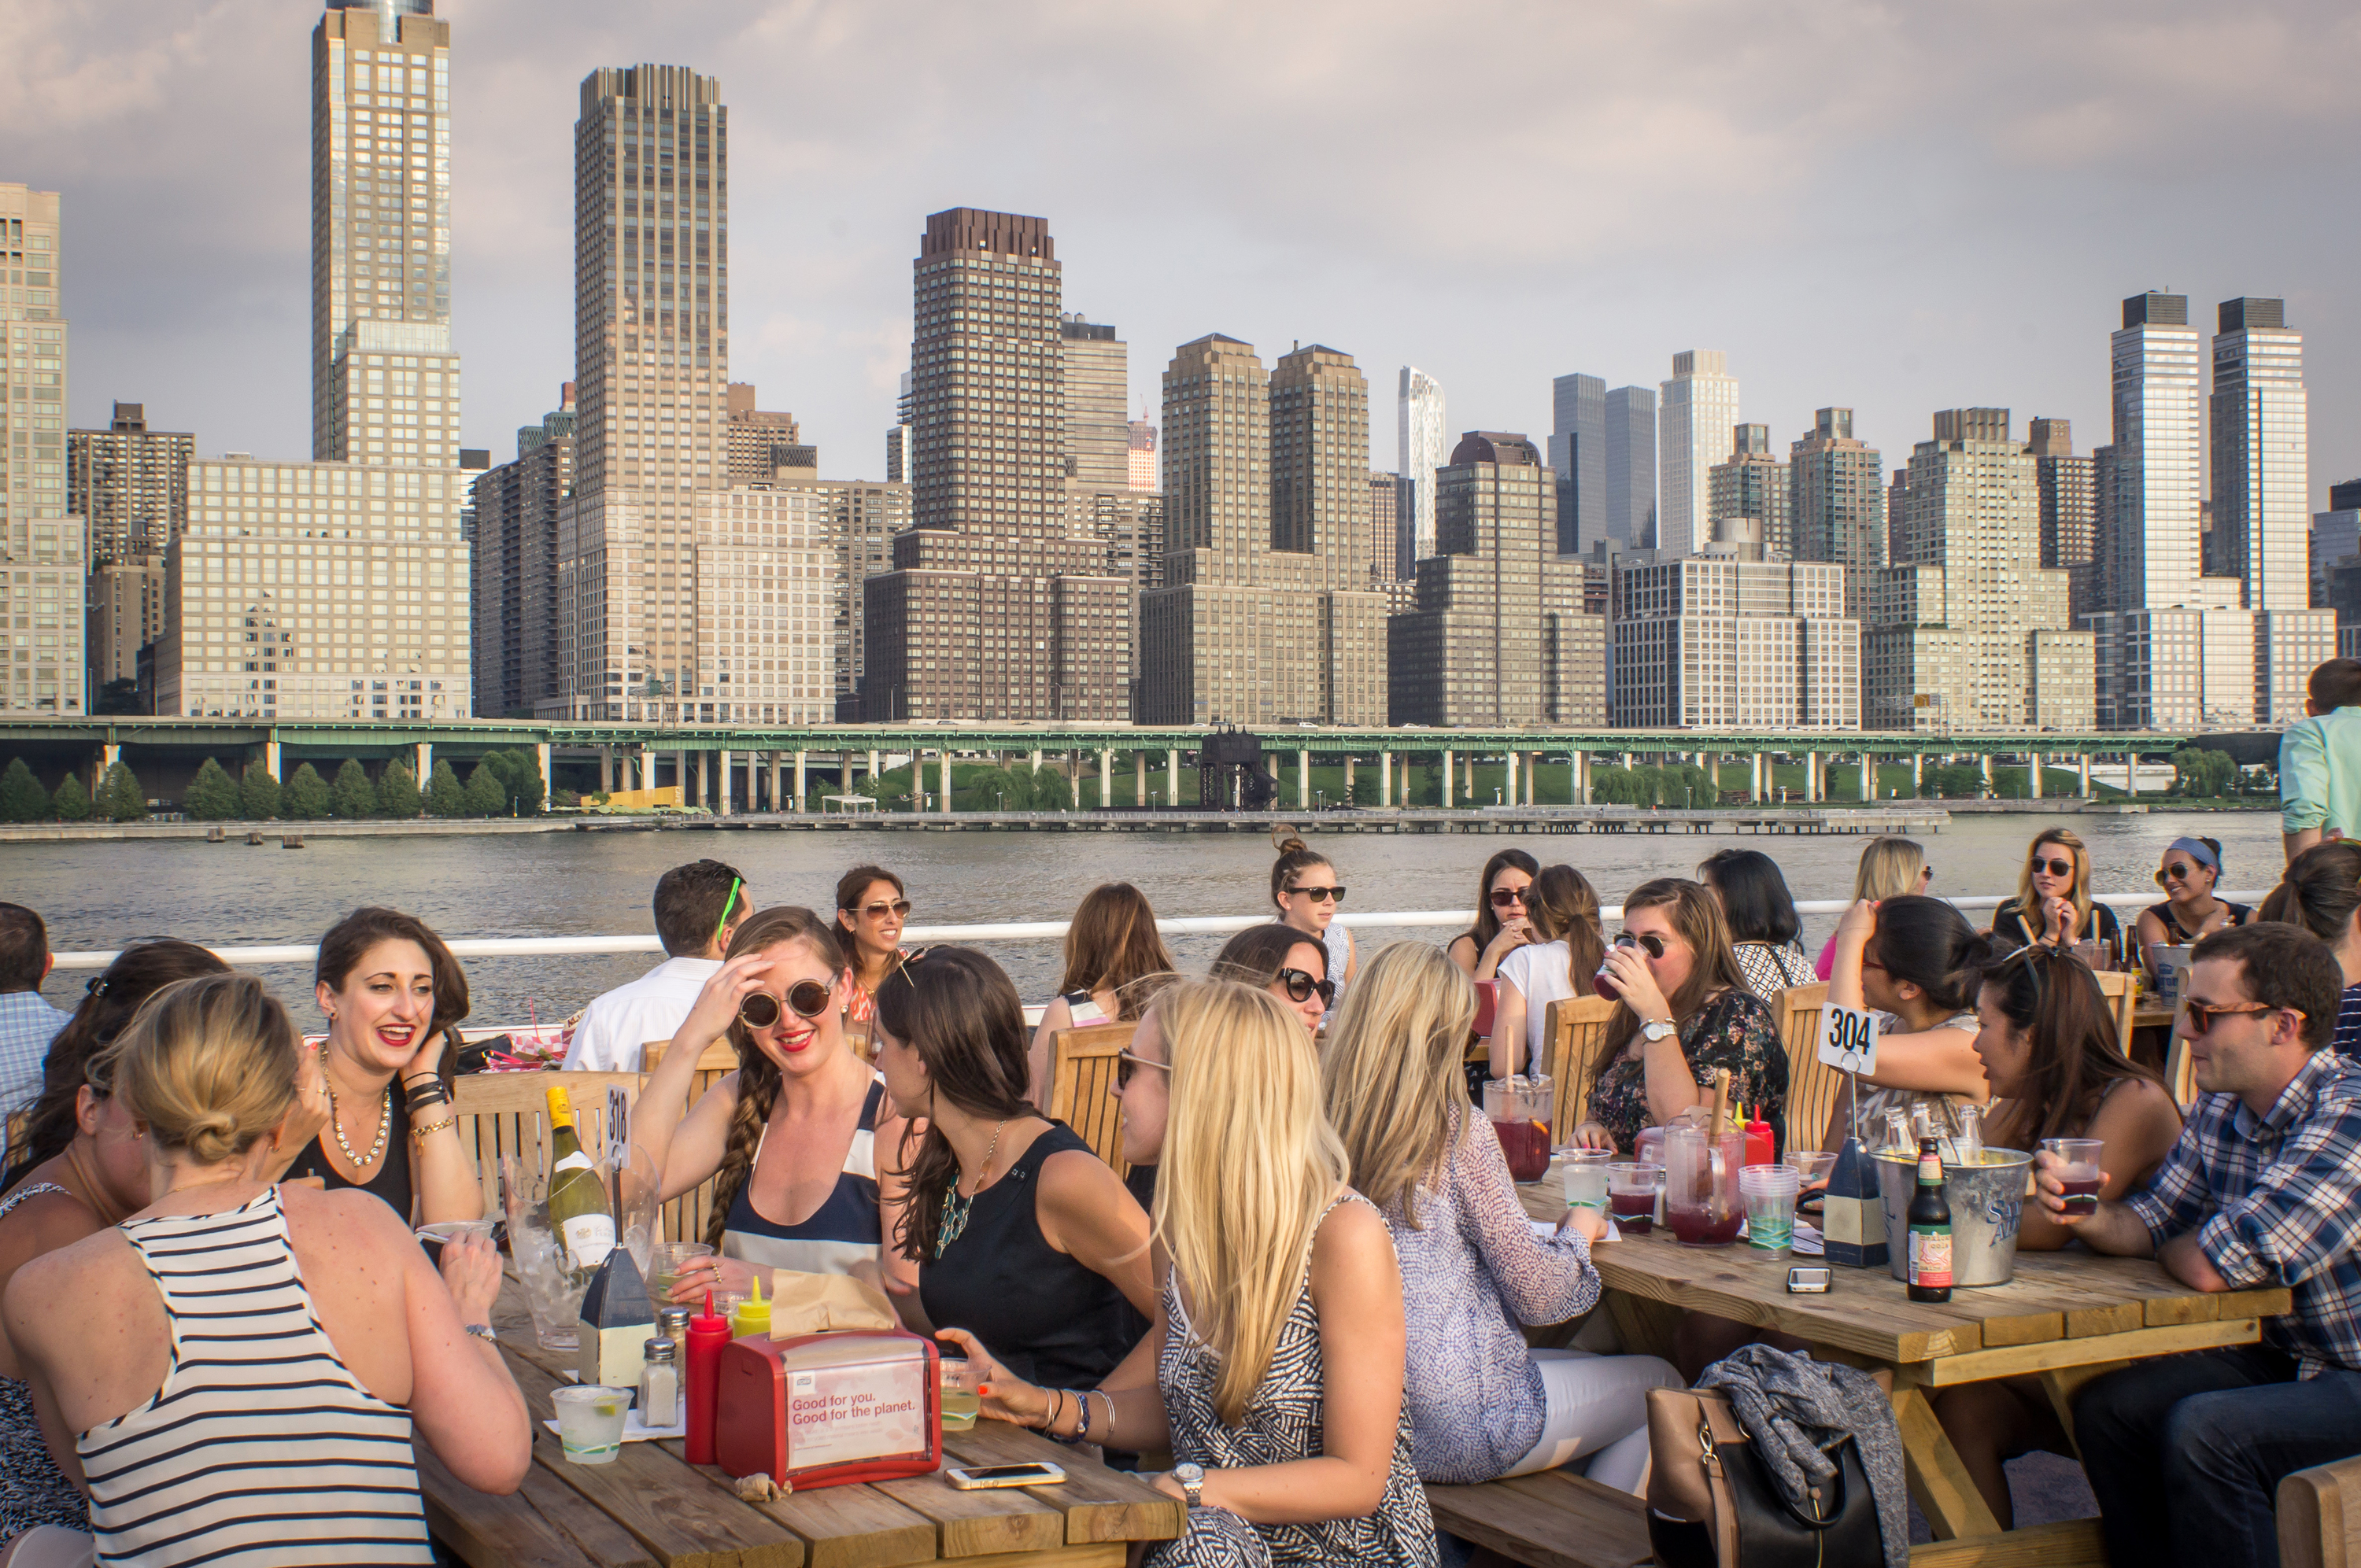 Best Waterfront Restaurants And Bars In New York